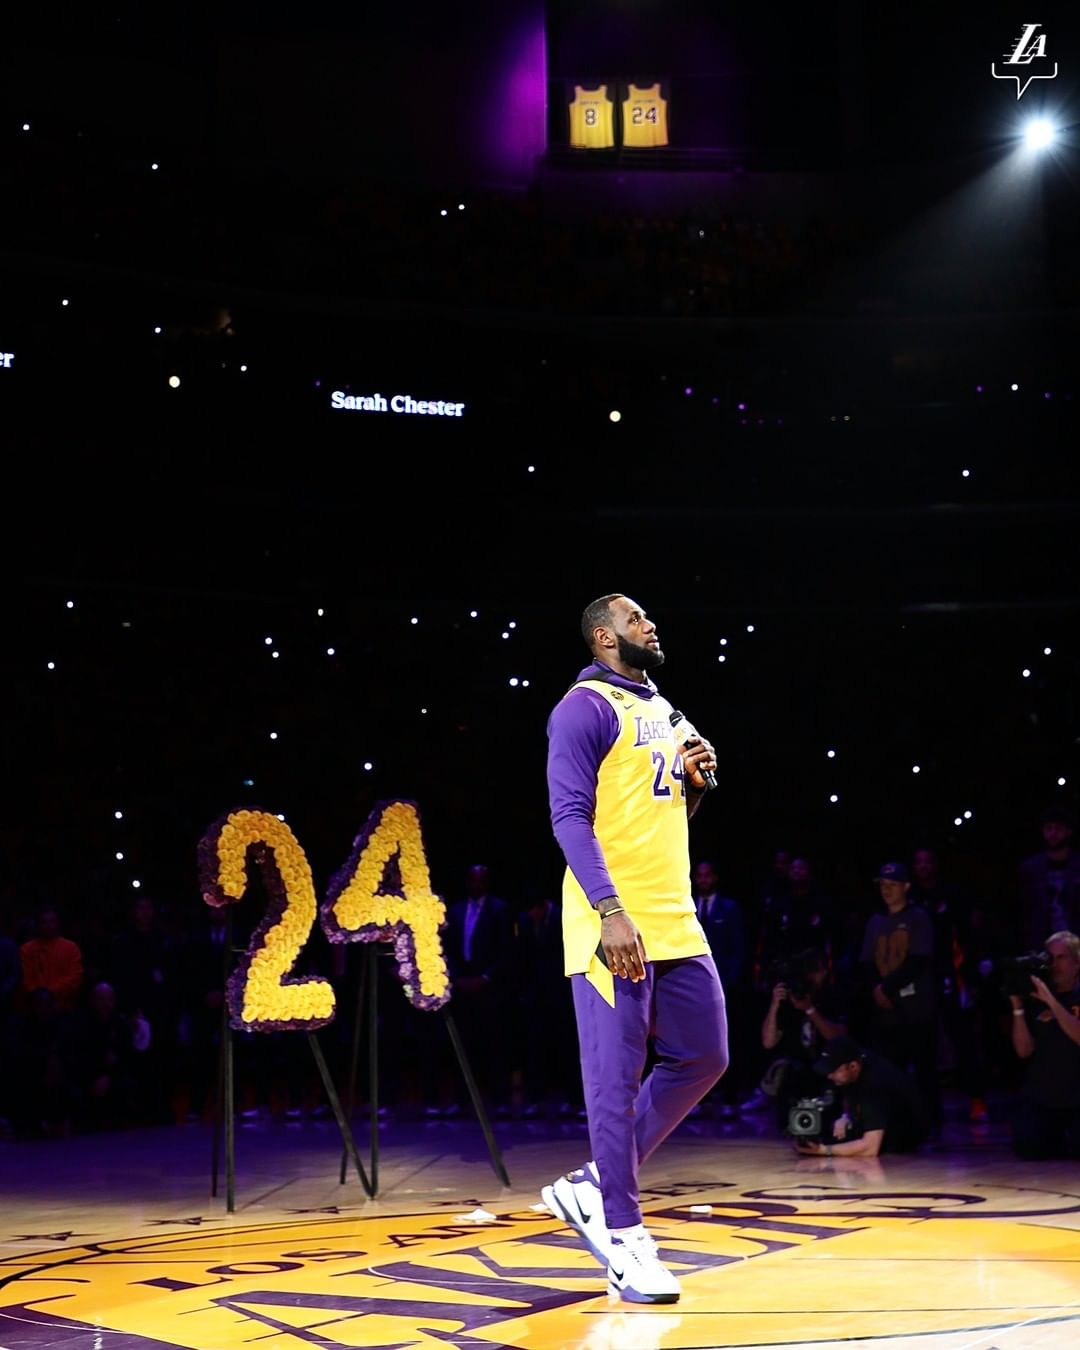 83199131 553098525297710 5569095223771808617 n - Kobe Bryant's jersey numbers 8 and 24 officially retired, here is why